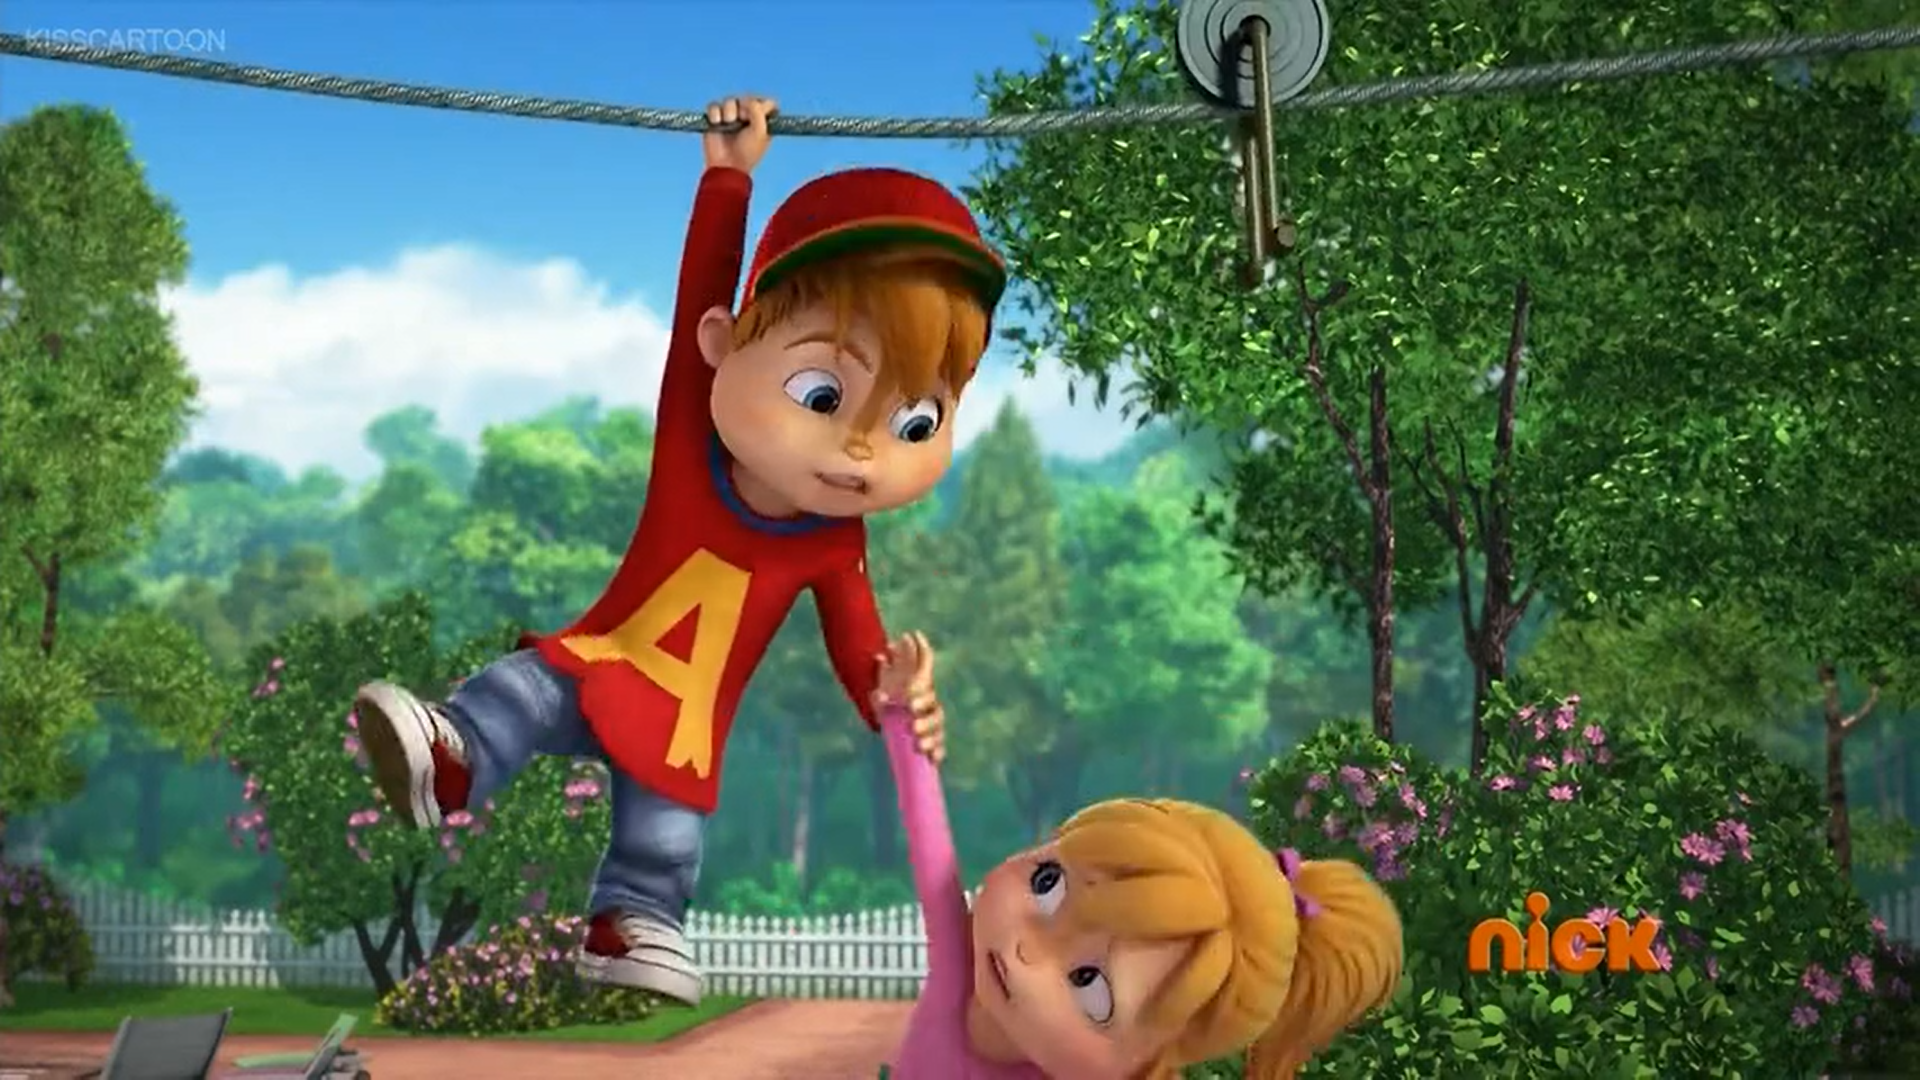 Alvinnn And The Chipmunks Brittany And Alvin knights | alvin and the chipmunks wiki | fandom